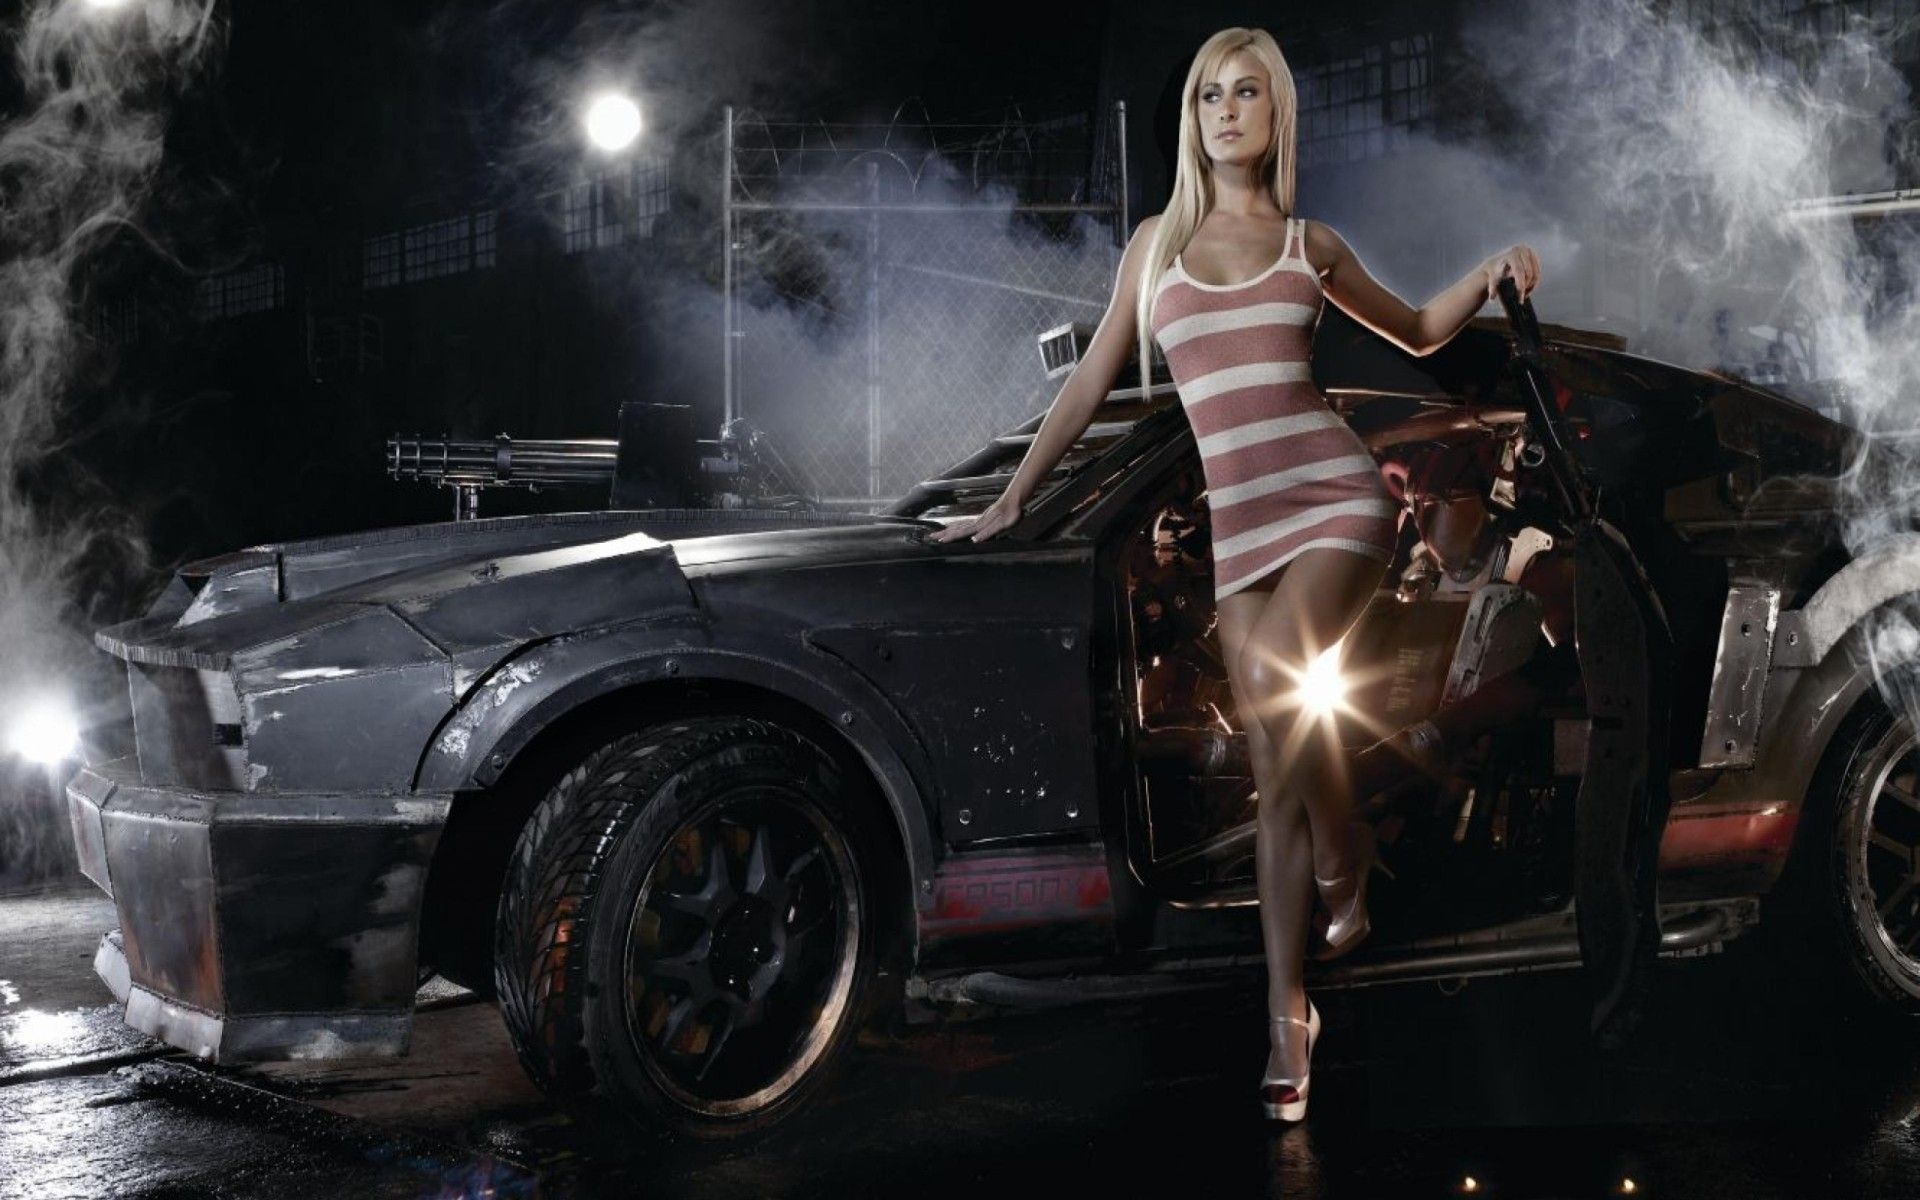 1920x1200 Girl car hd wallpaper